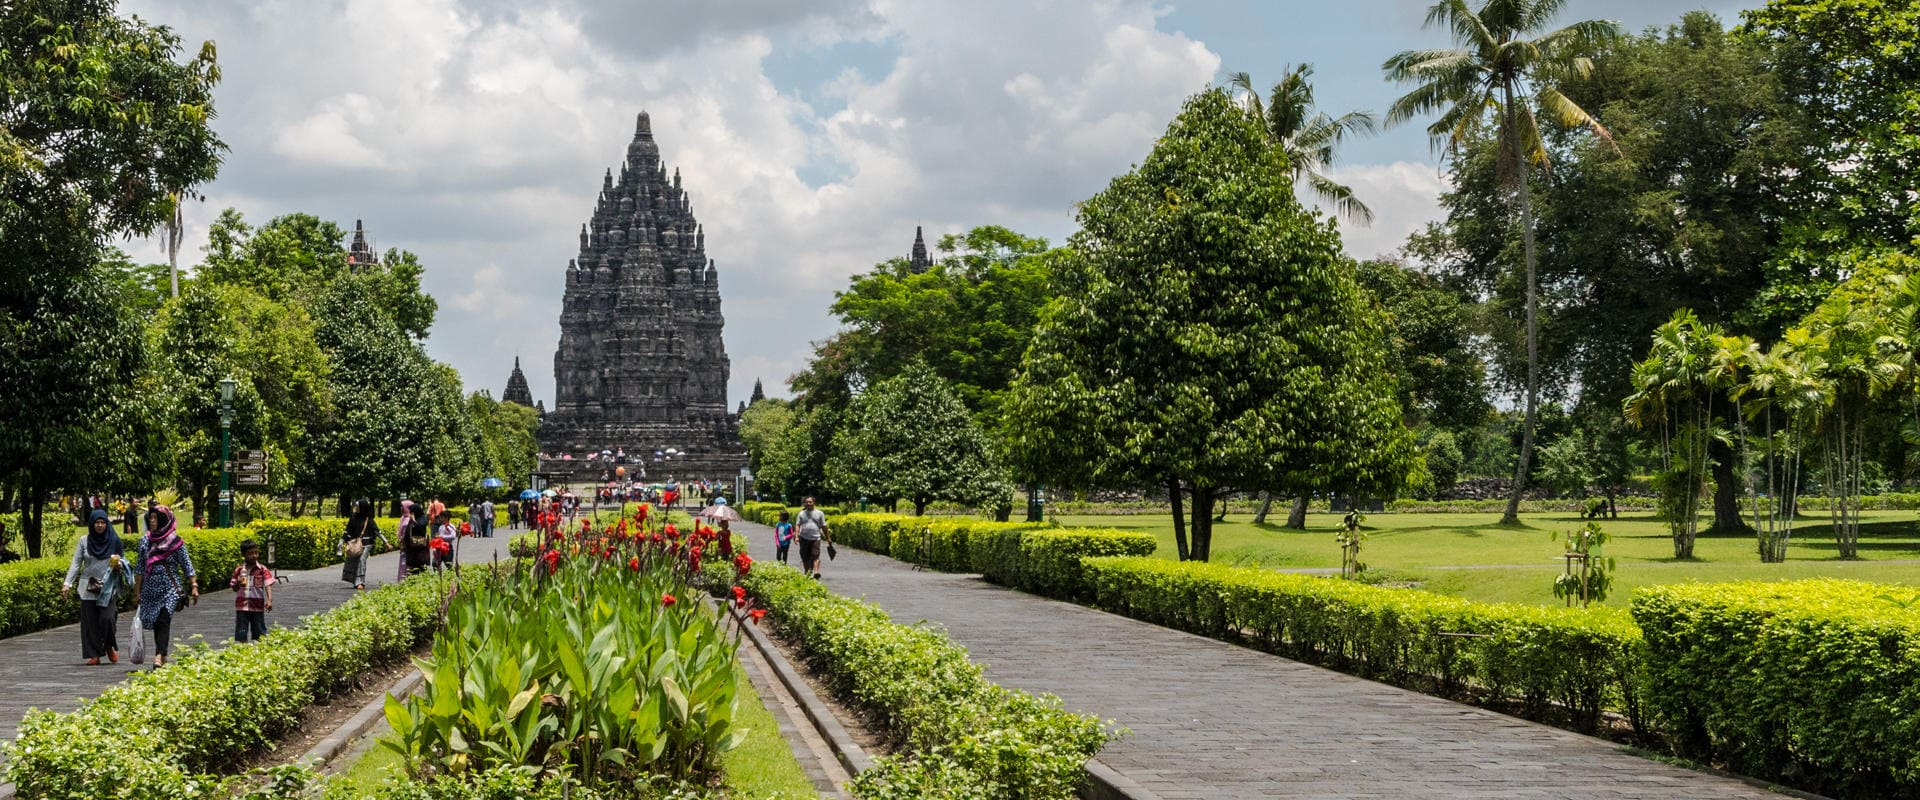 The Grantourismo Travel Guide to Yogyakarta, Java, Indonesia. Copyright © 2017 Terence Carter / Grantourismo. All Rights Reserved.